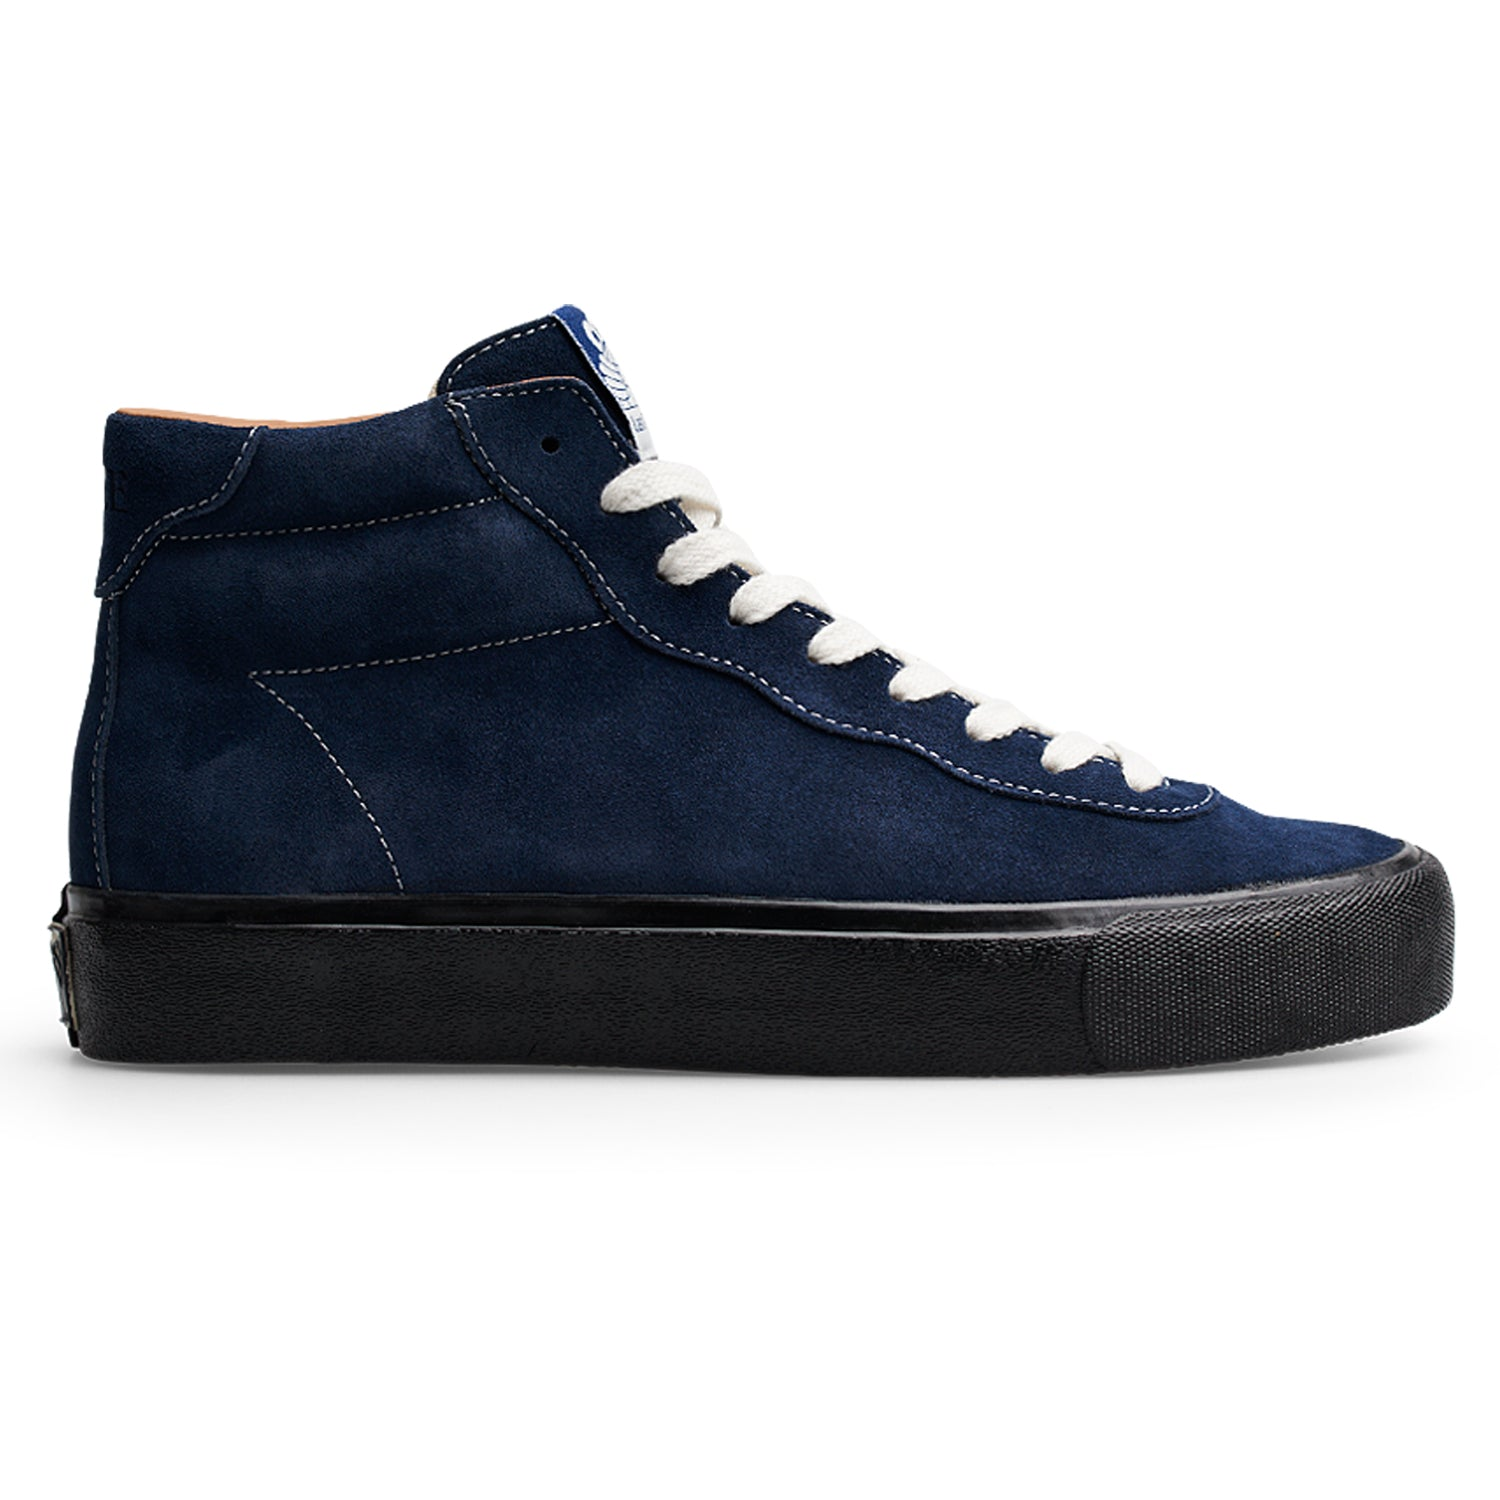 Last Resort VM001 Suede Hi Navy/Black